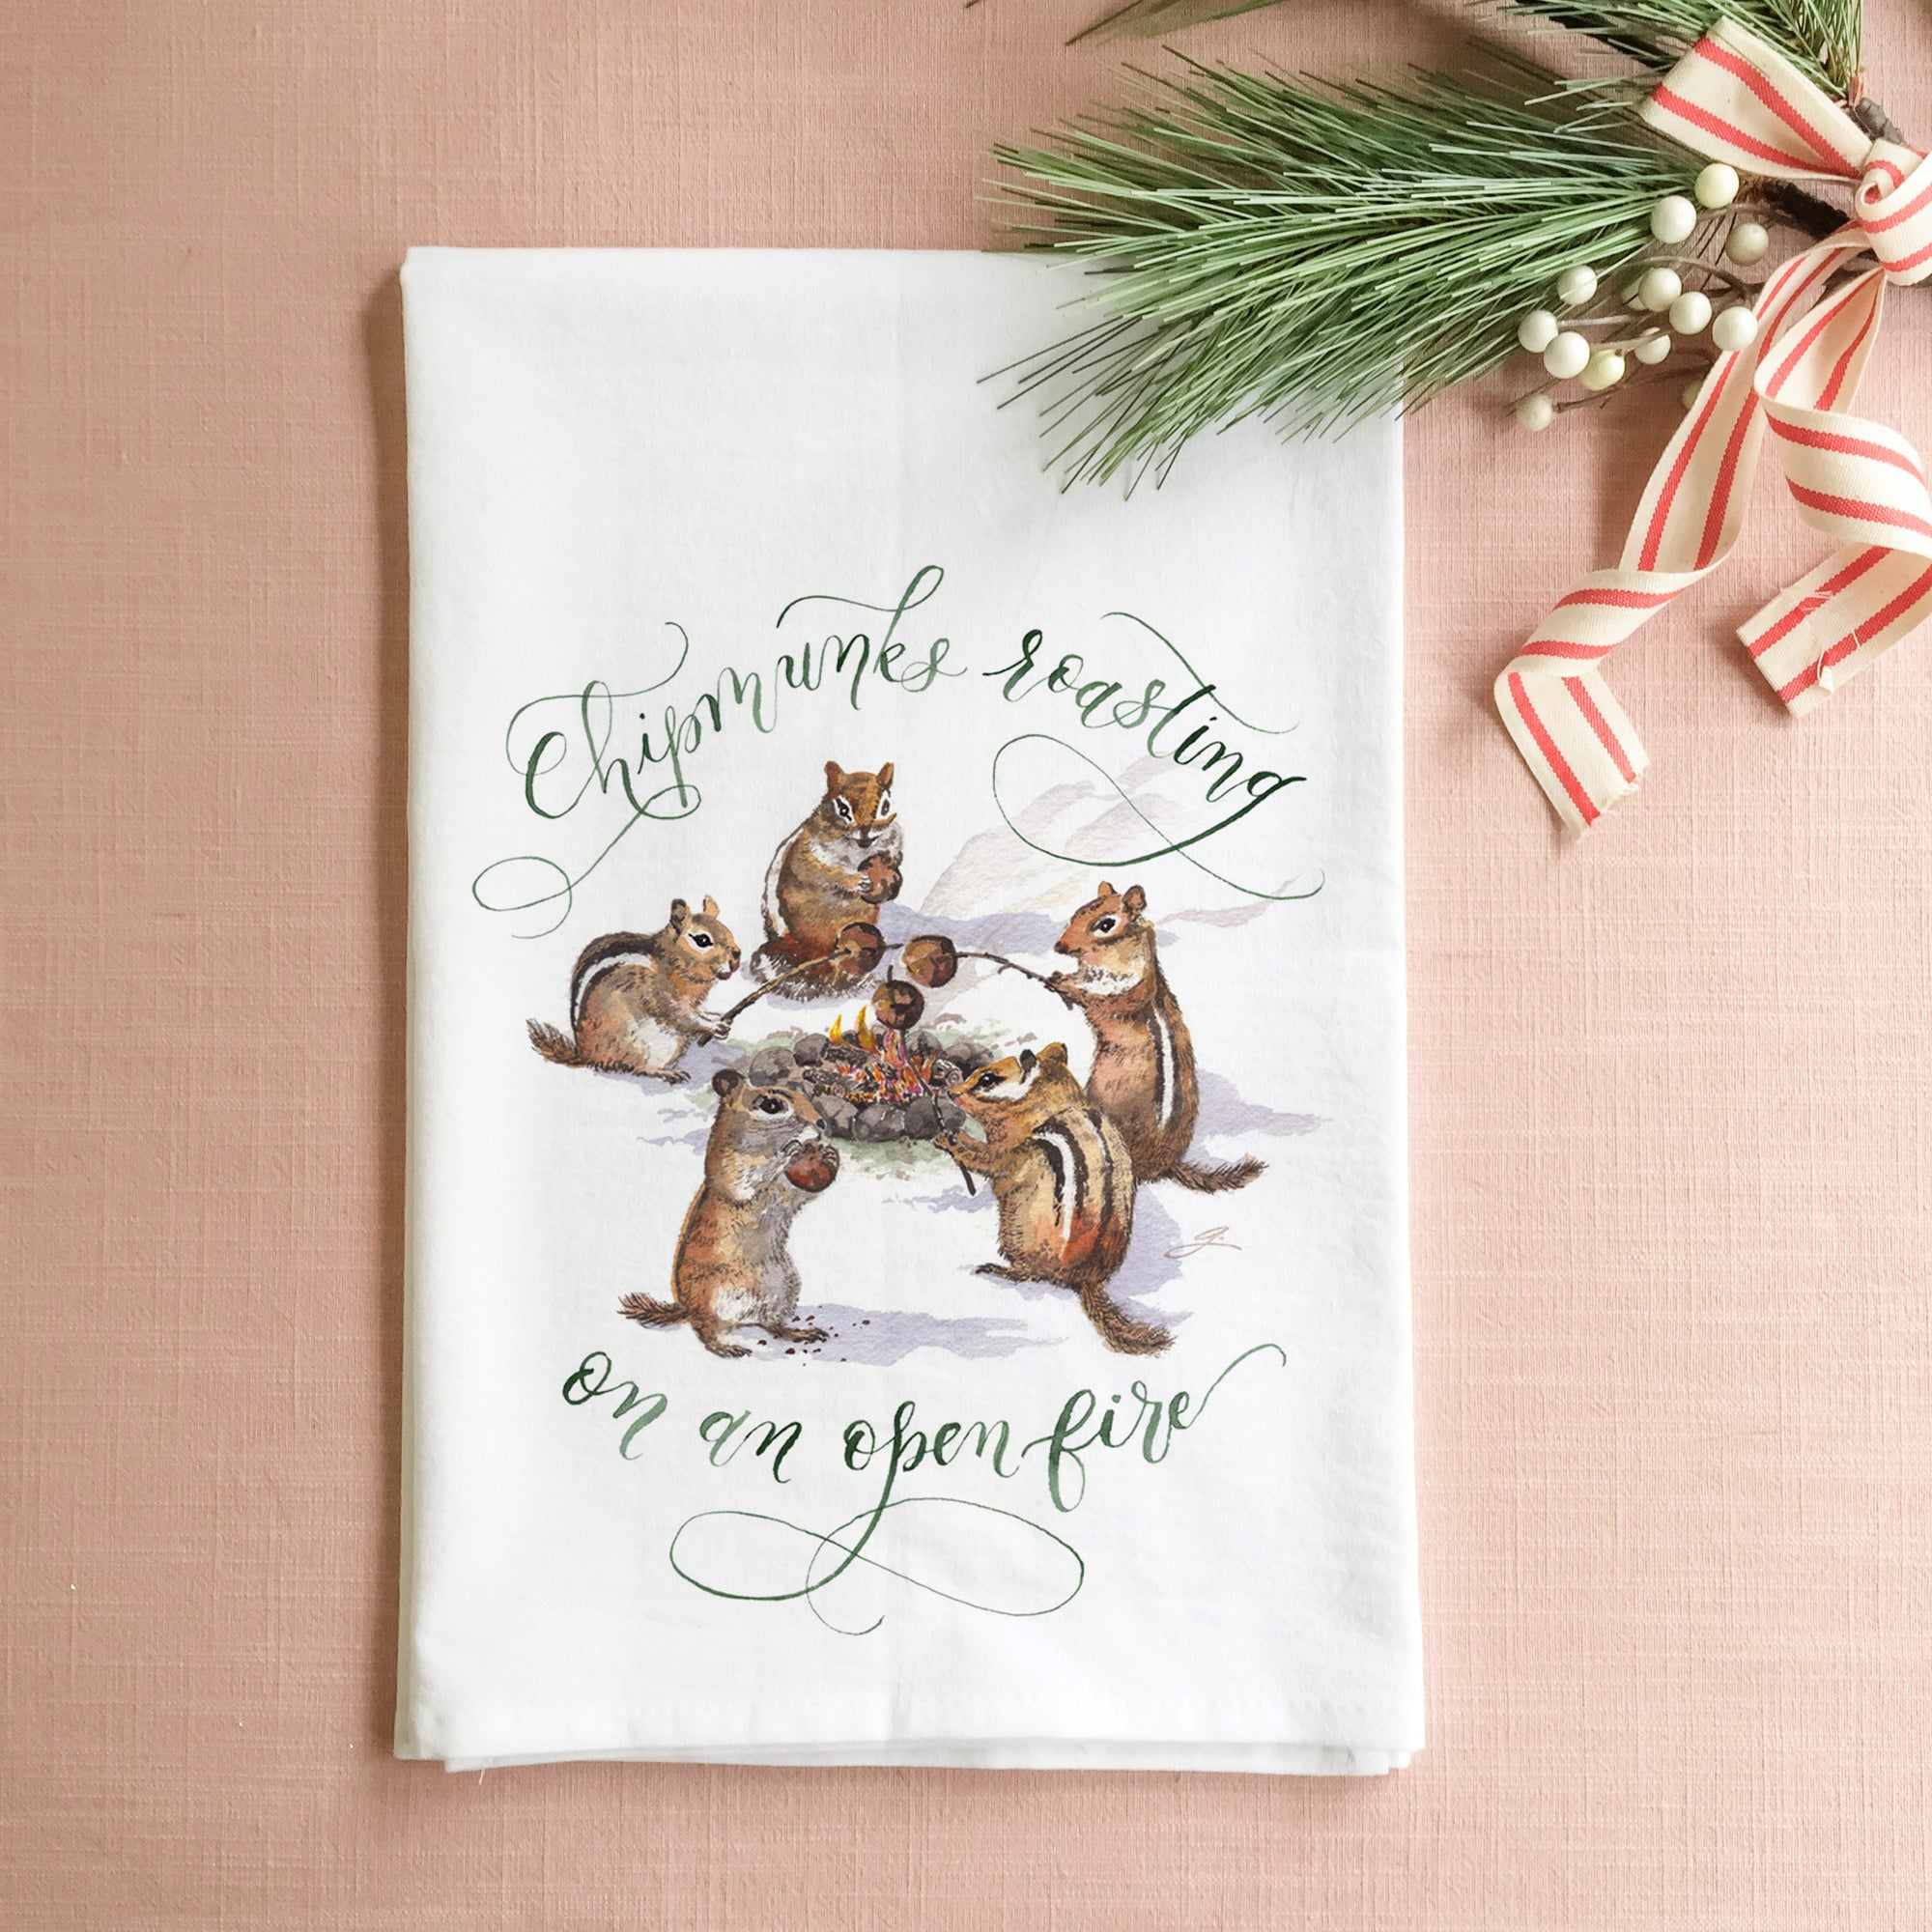 Chipmunks Roasting on an Open Fire Tea Towel | Father-Daughter Collaboration